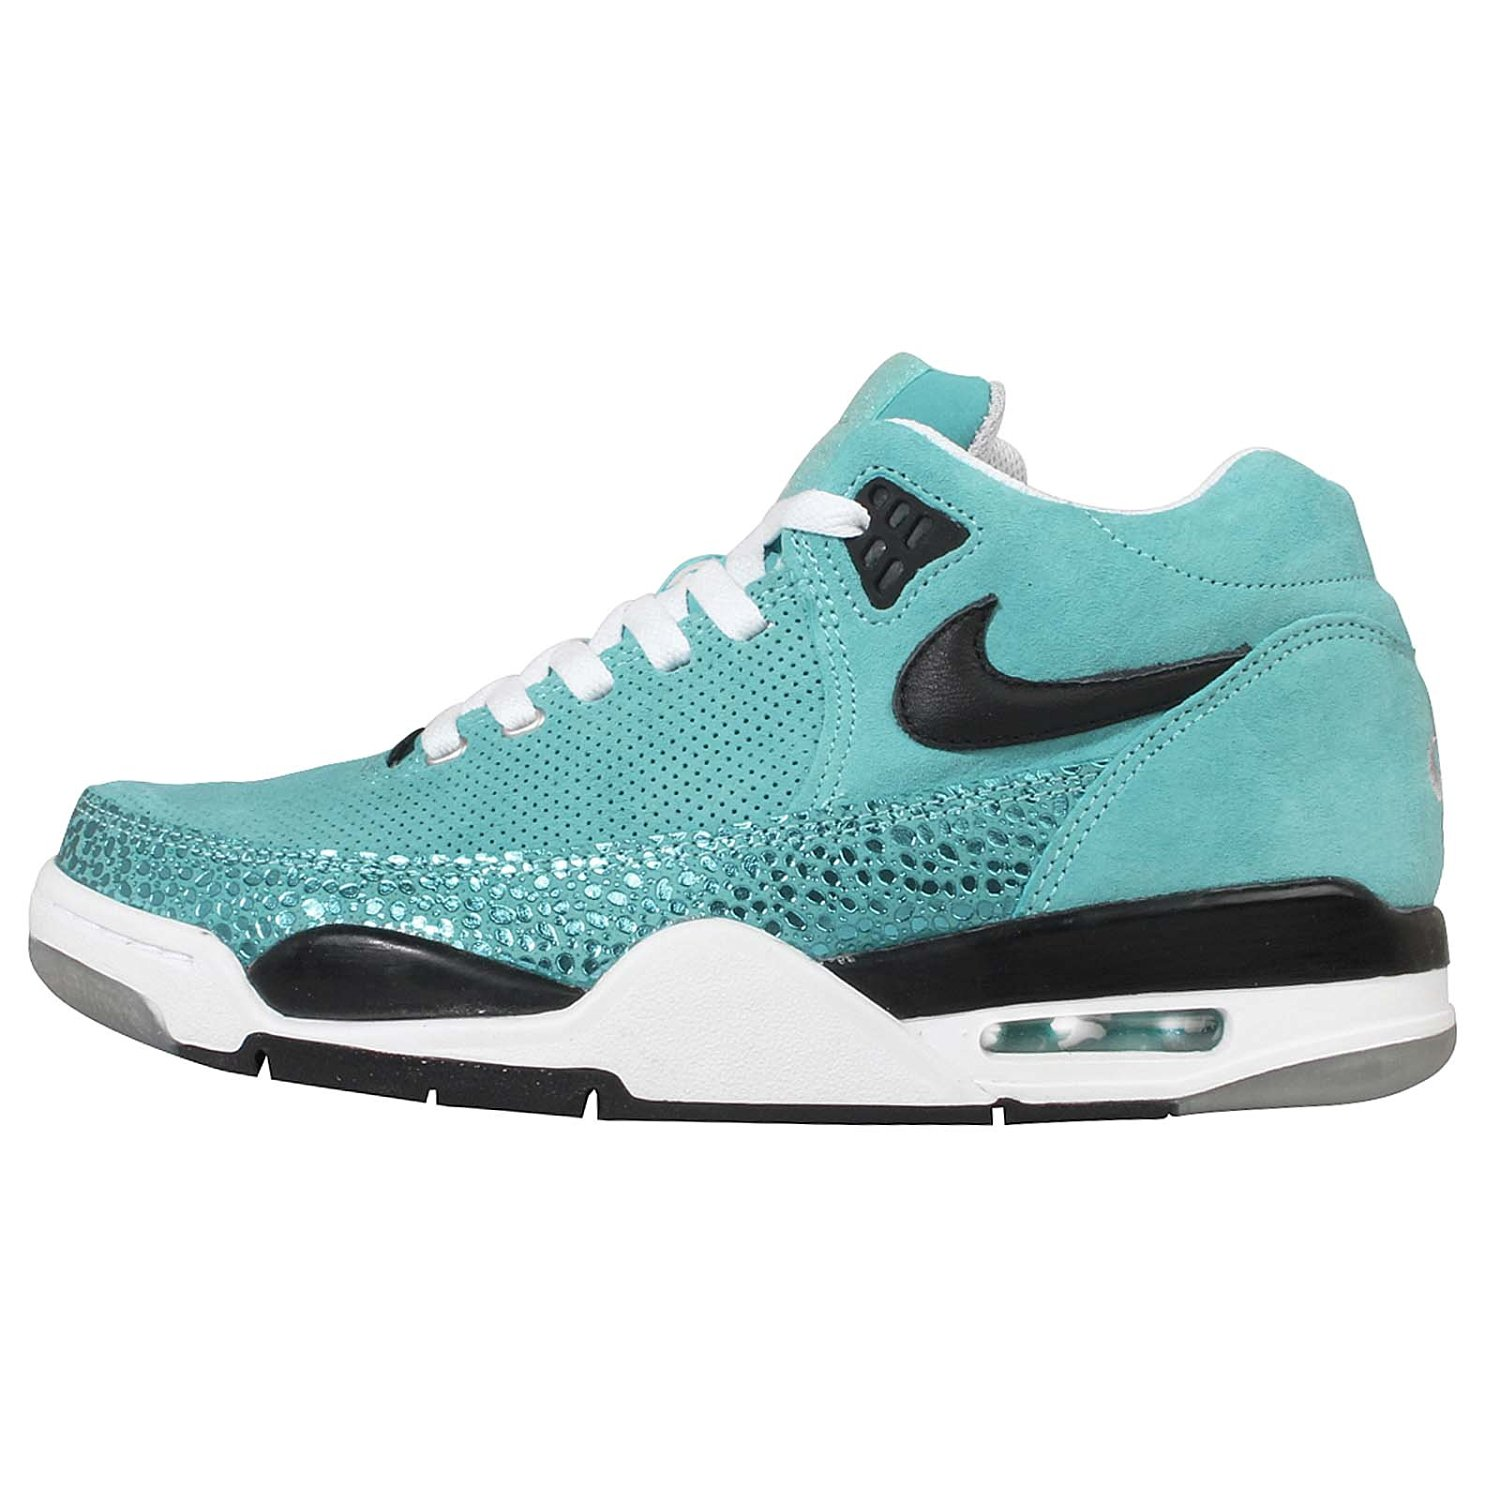 27295aa8 Get Quotations · nike flight squad mens hi top trainers 724986 sneakers  shoes